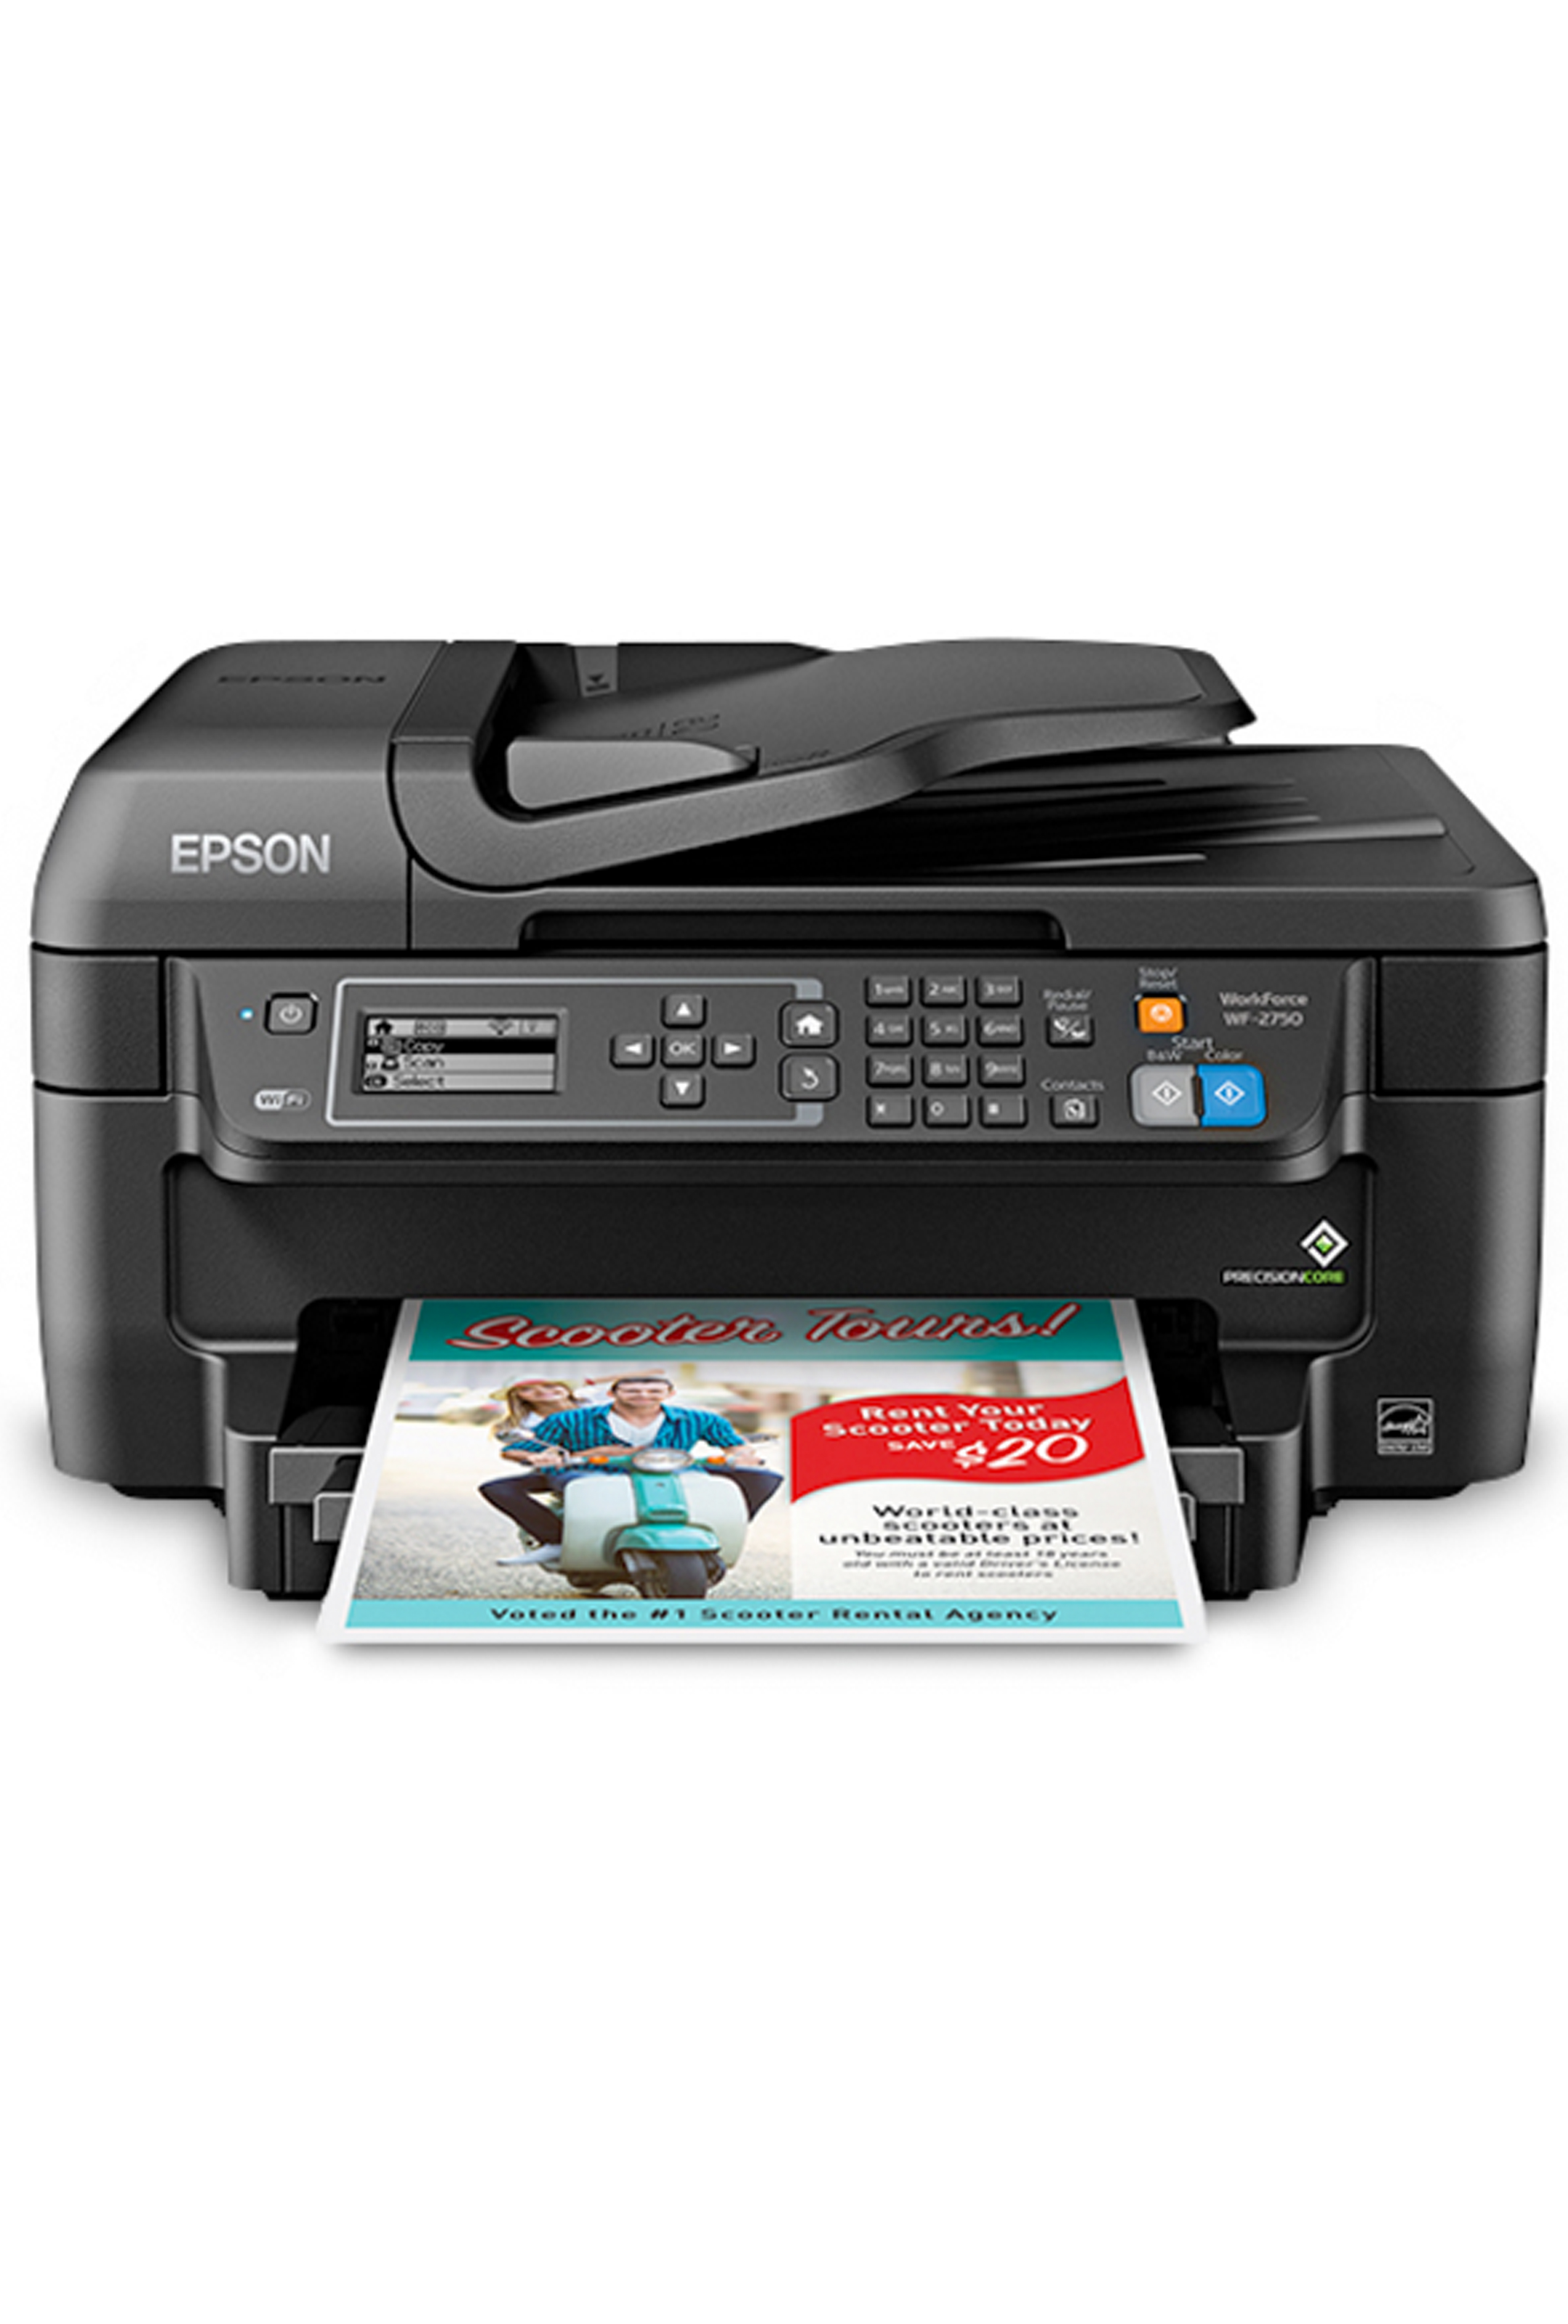 Epson WorkForce WF-2750 All-in-One Printer (13.7/7.3ppm)